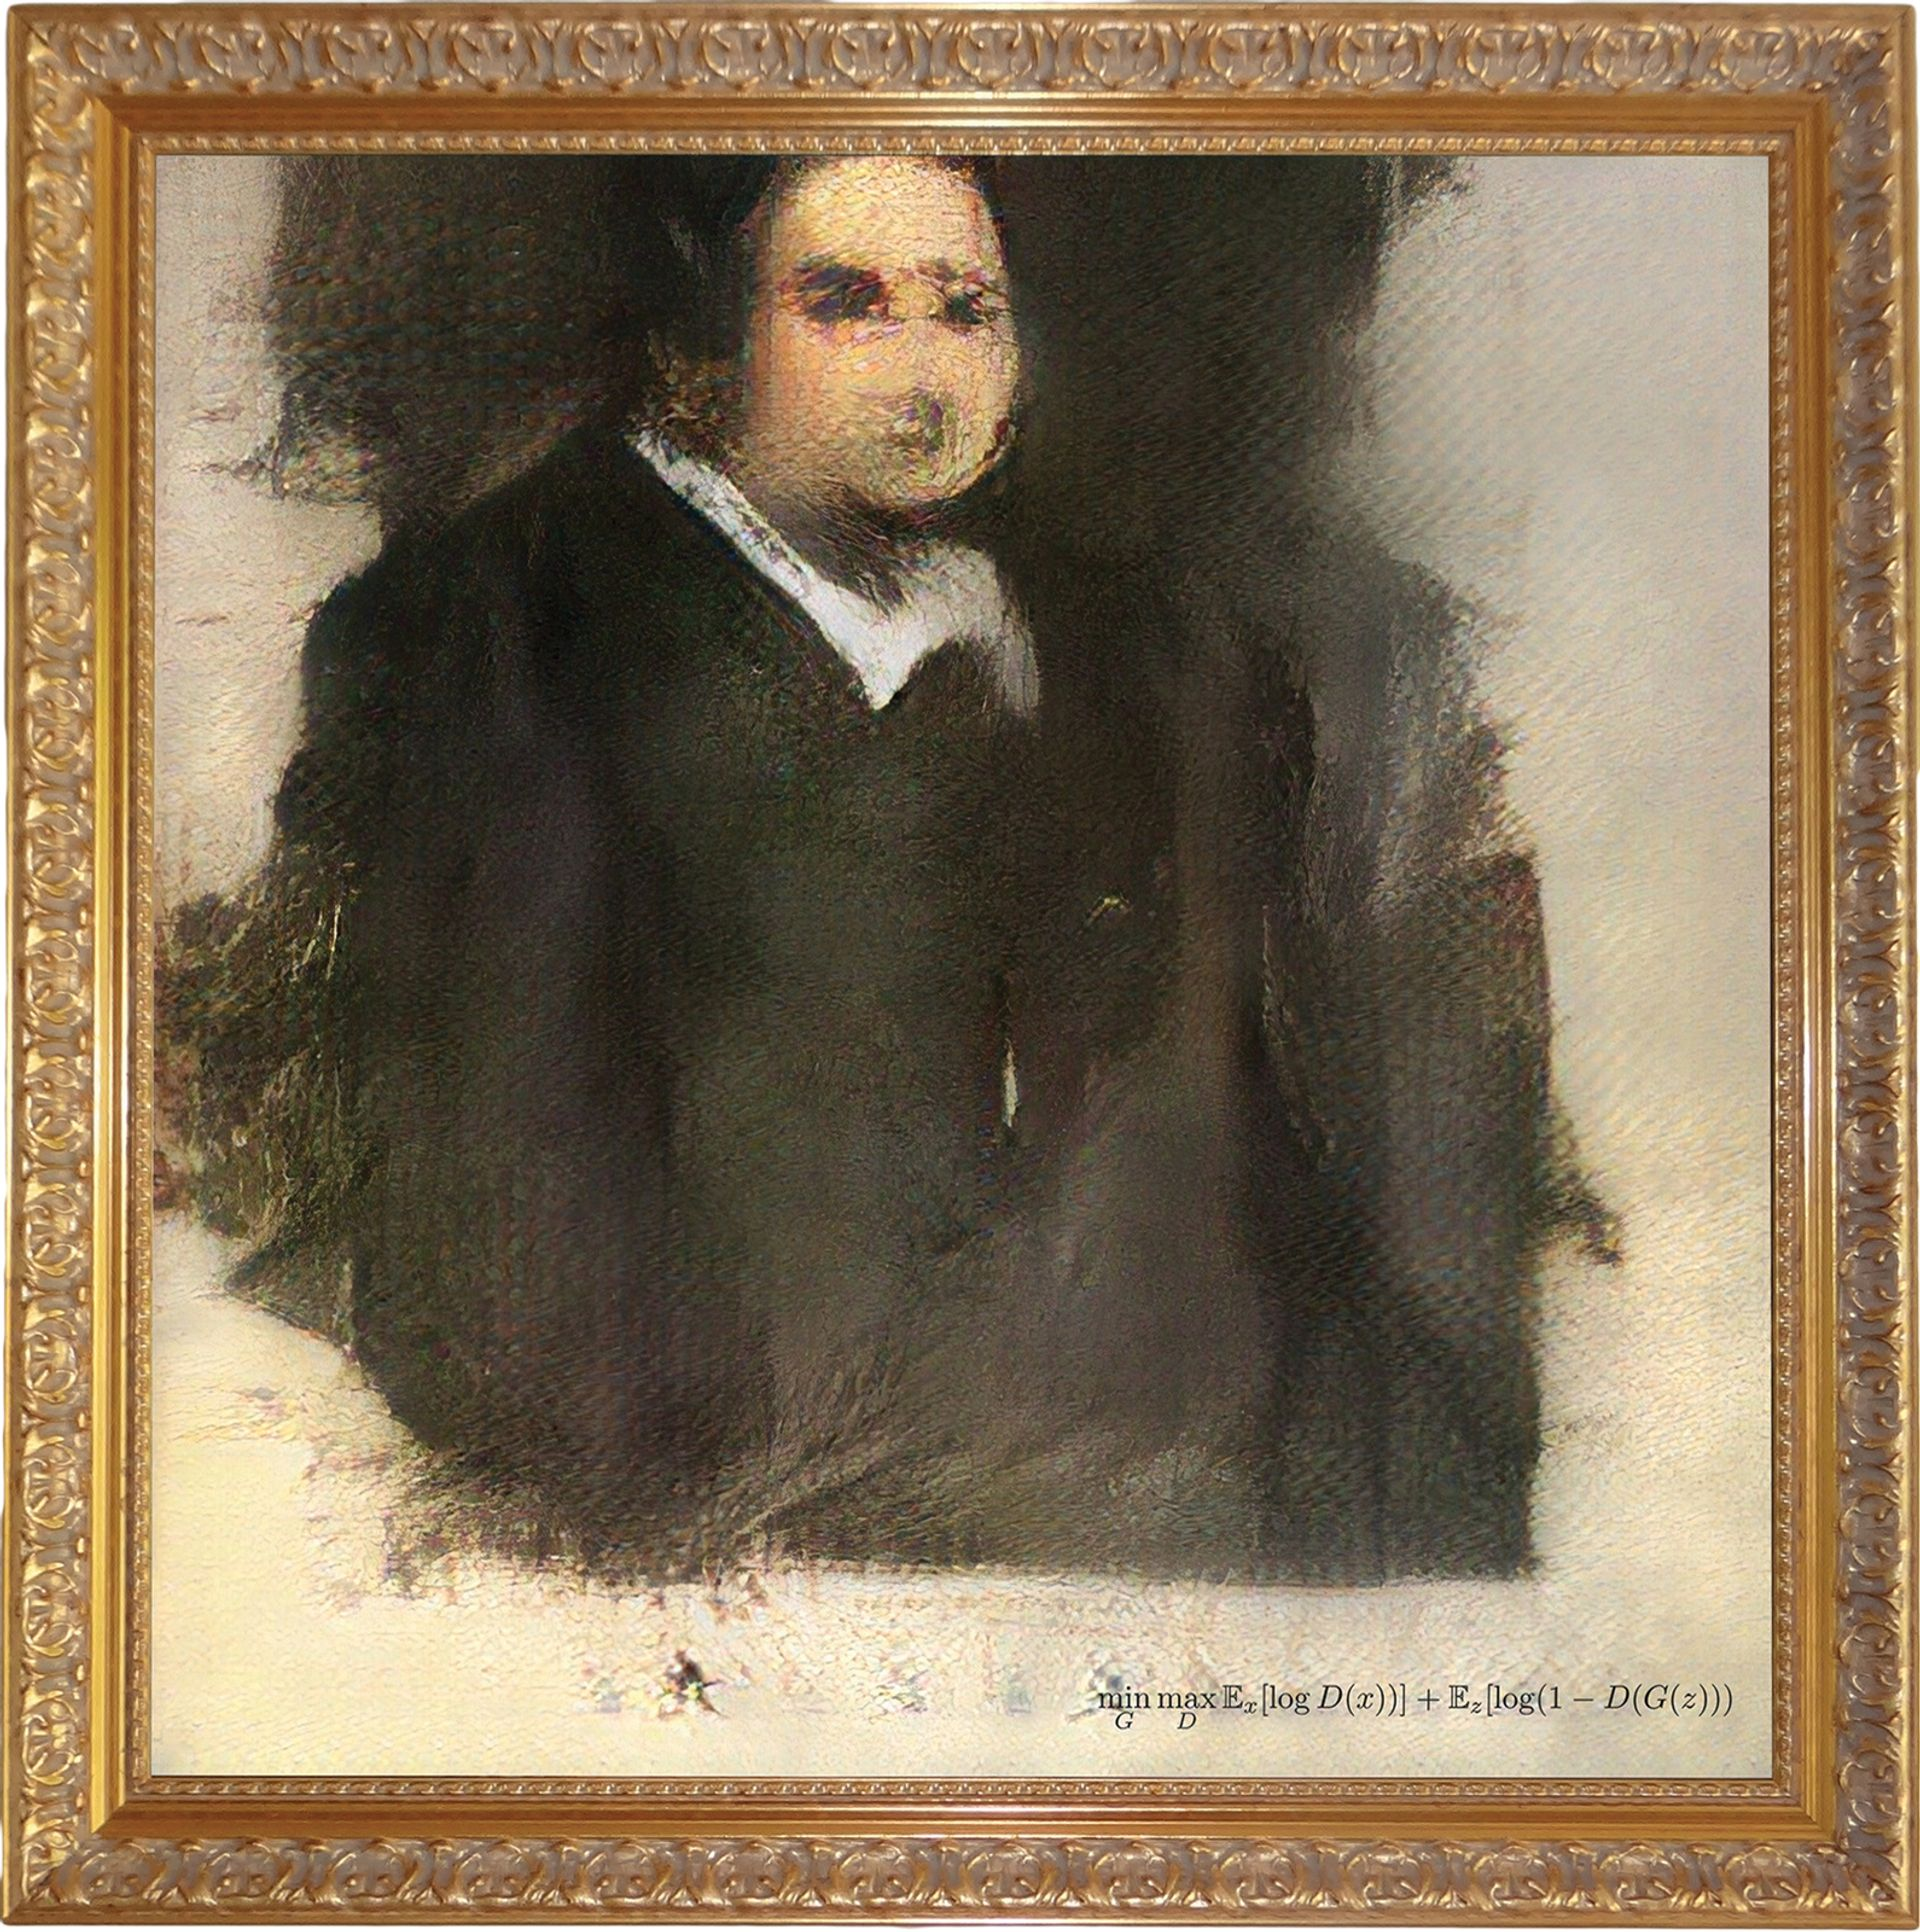 Portrait of Edmond Belamy was created using an as-yet-unrevealed source code and hits the auction block this month Courtesy of Christie's